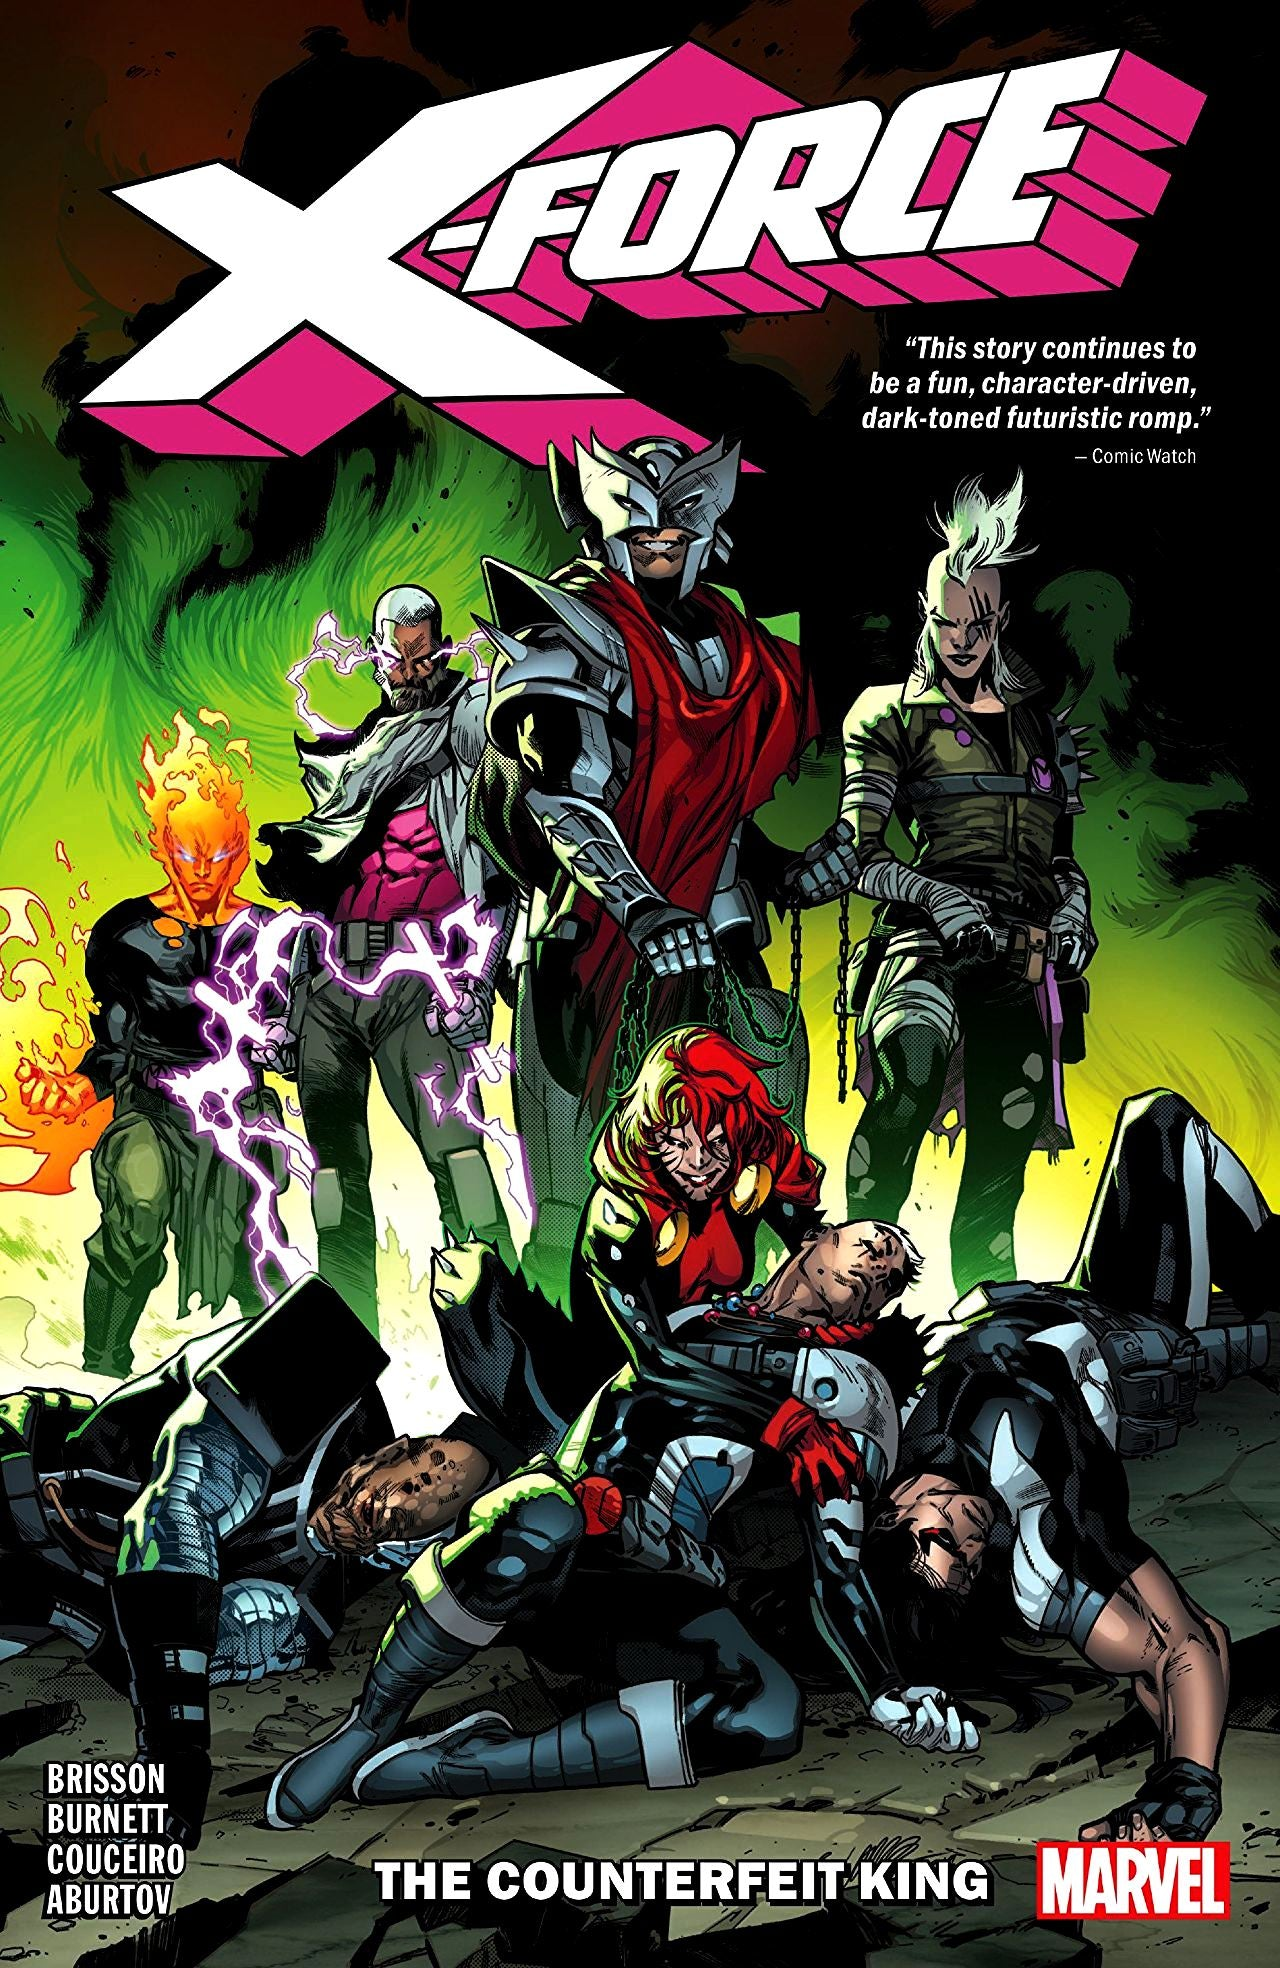 X-Force (2018) Volume 2: The Counterfeit King